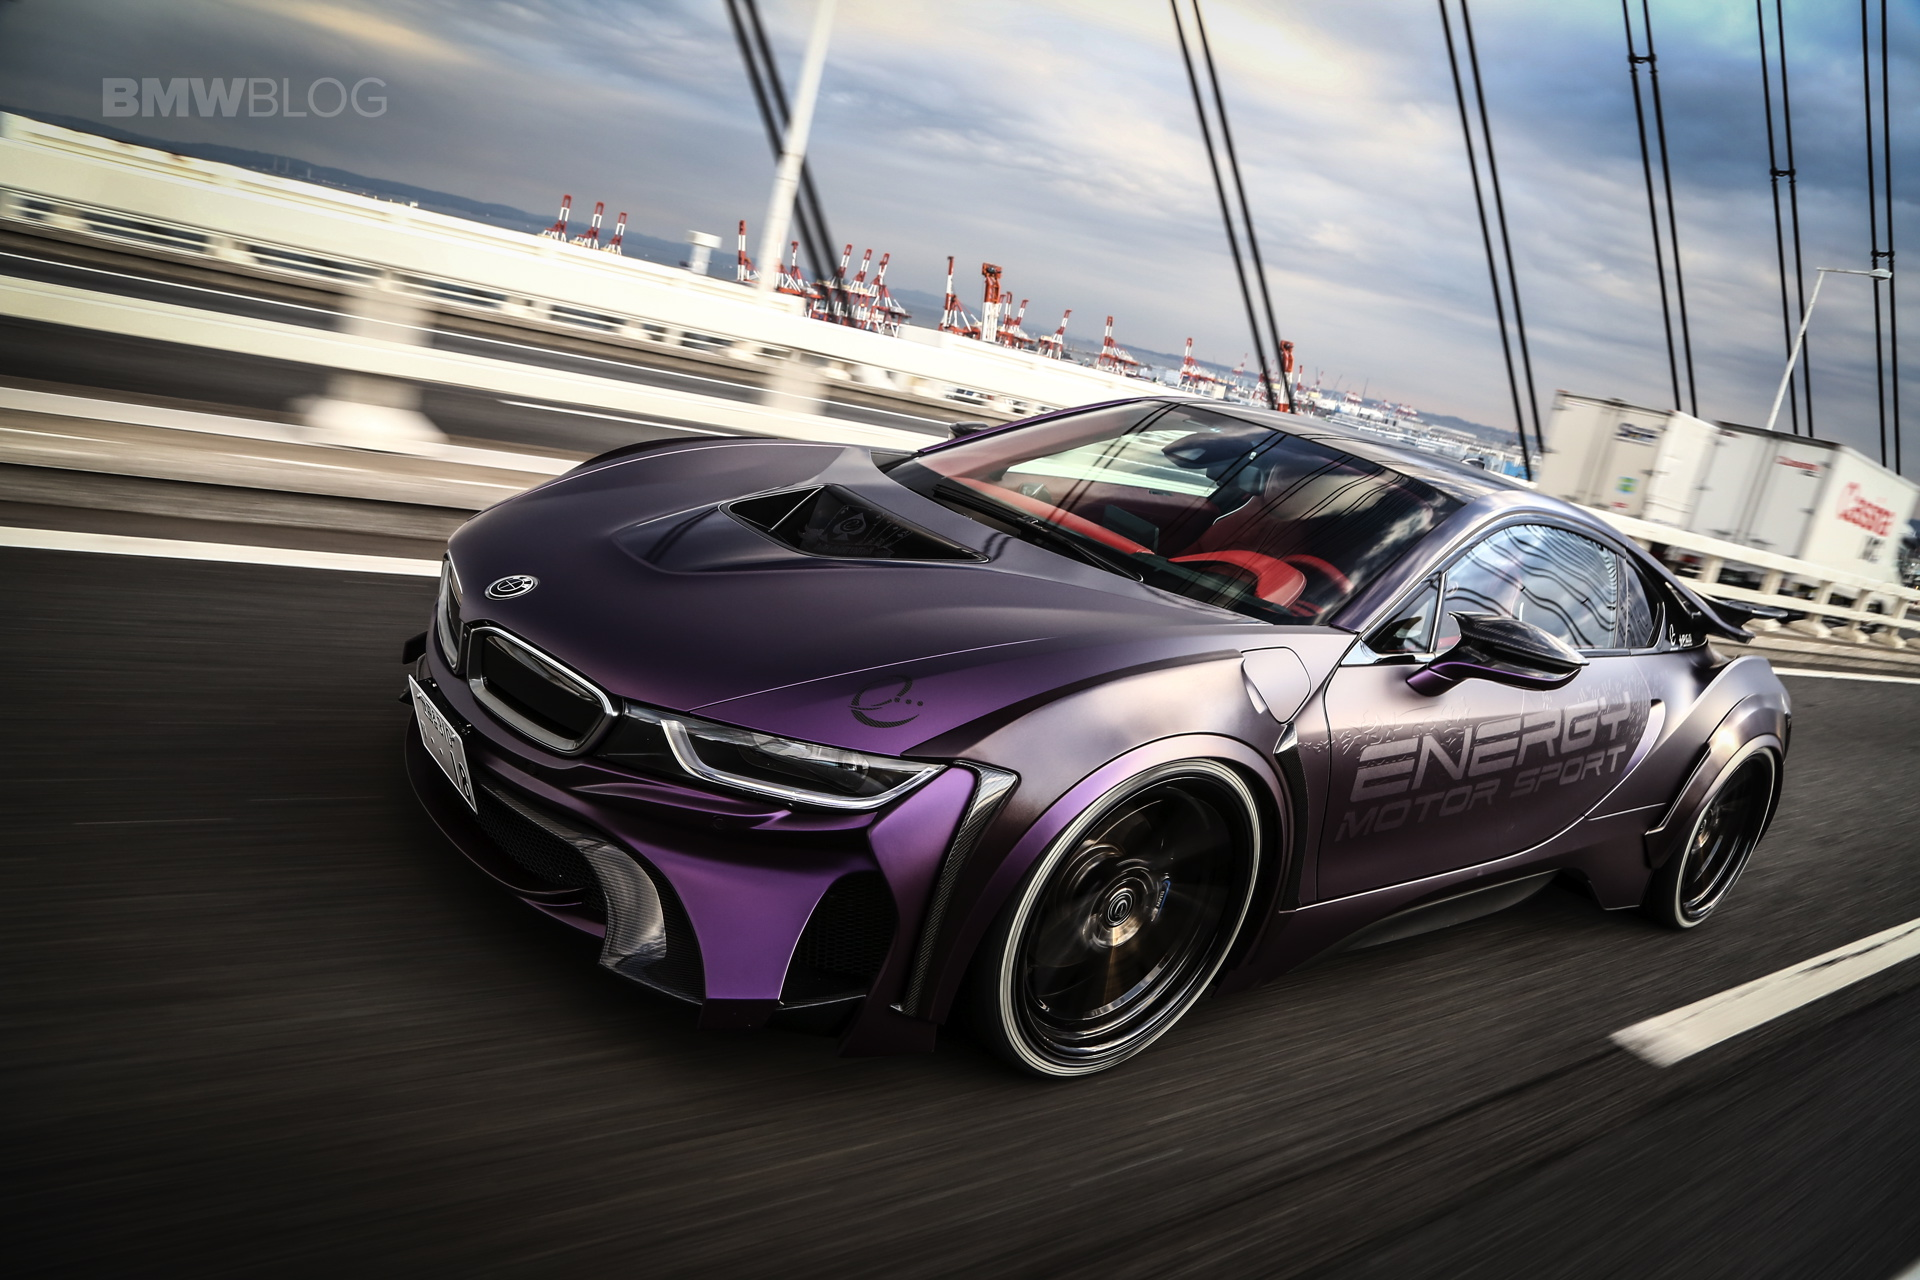 Bmw Evo I8 Quot Dark Knight Quot Edition Is The Batmobile We All Want